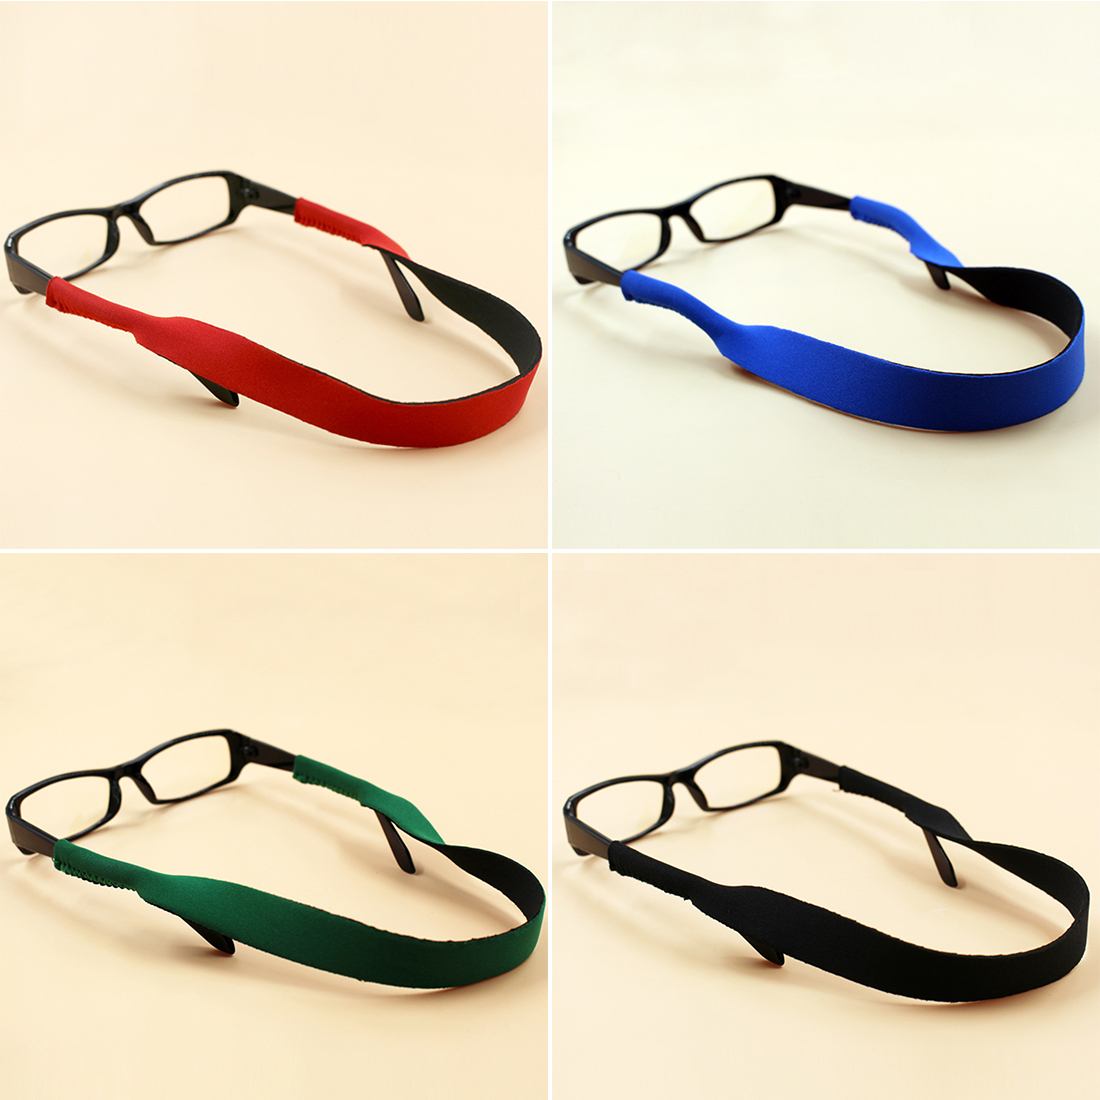 Fashion Glasses  Anti-slip Rope Summer Sunglasses Band Strap Neoprene String Rope Eyeglasses Strap Cool  Glasses Accessories